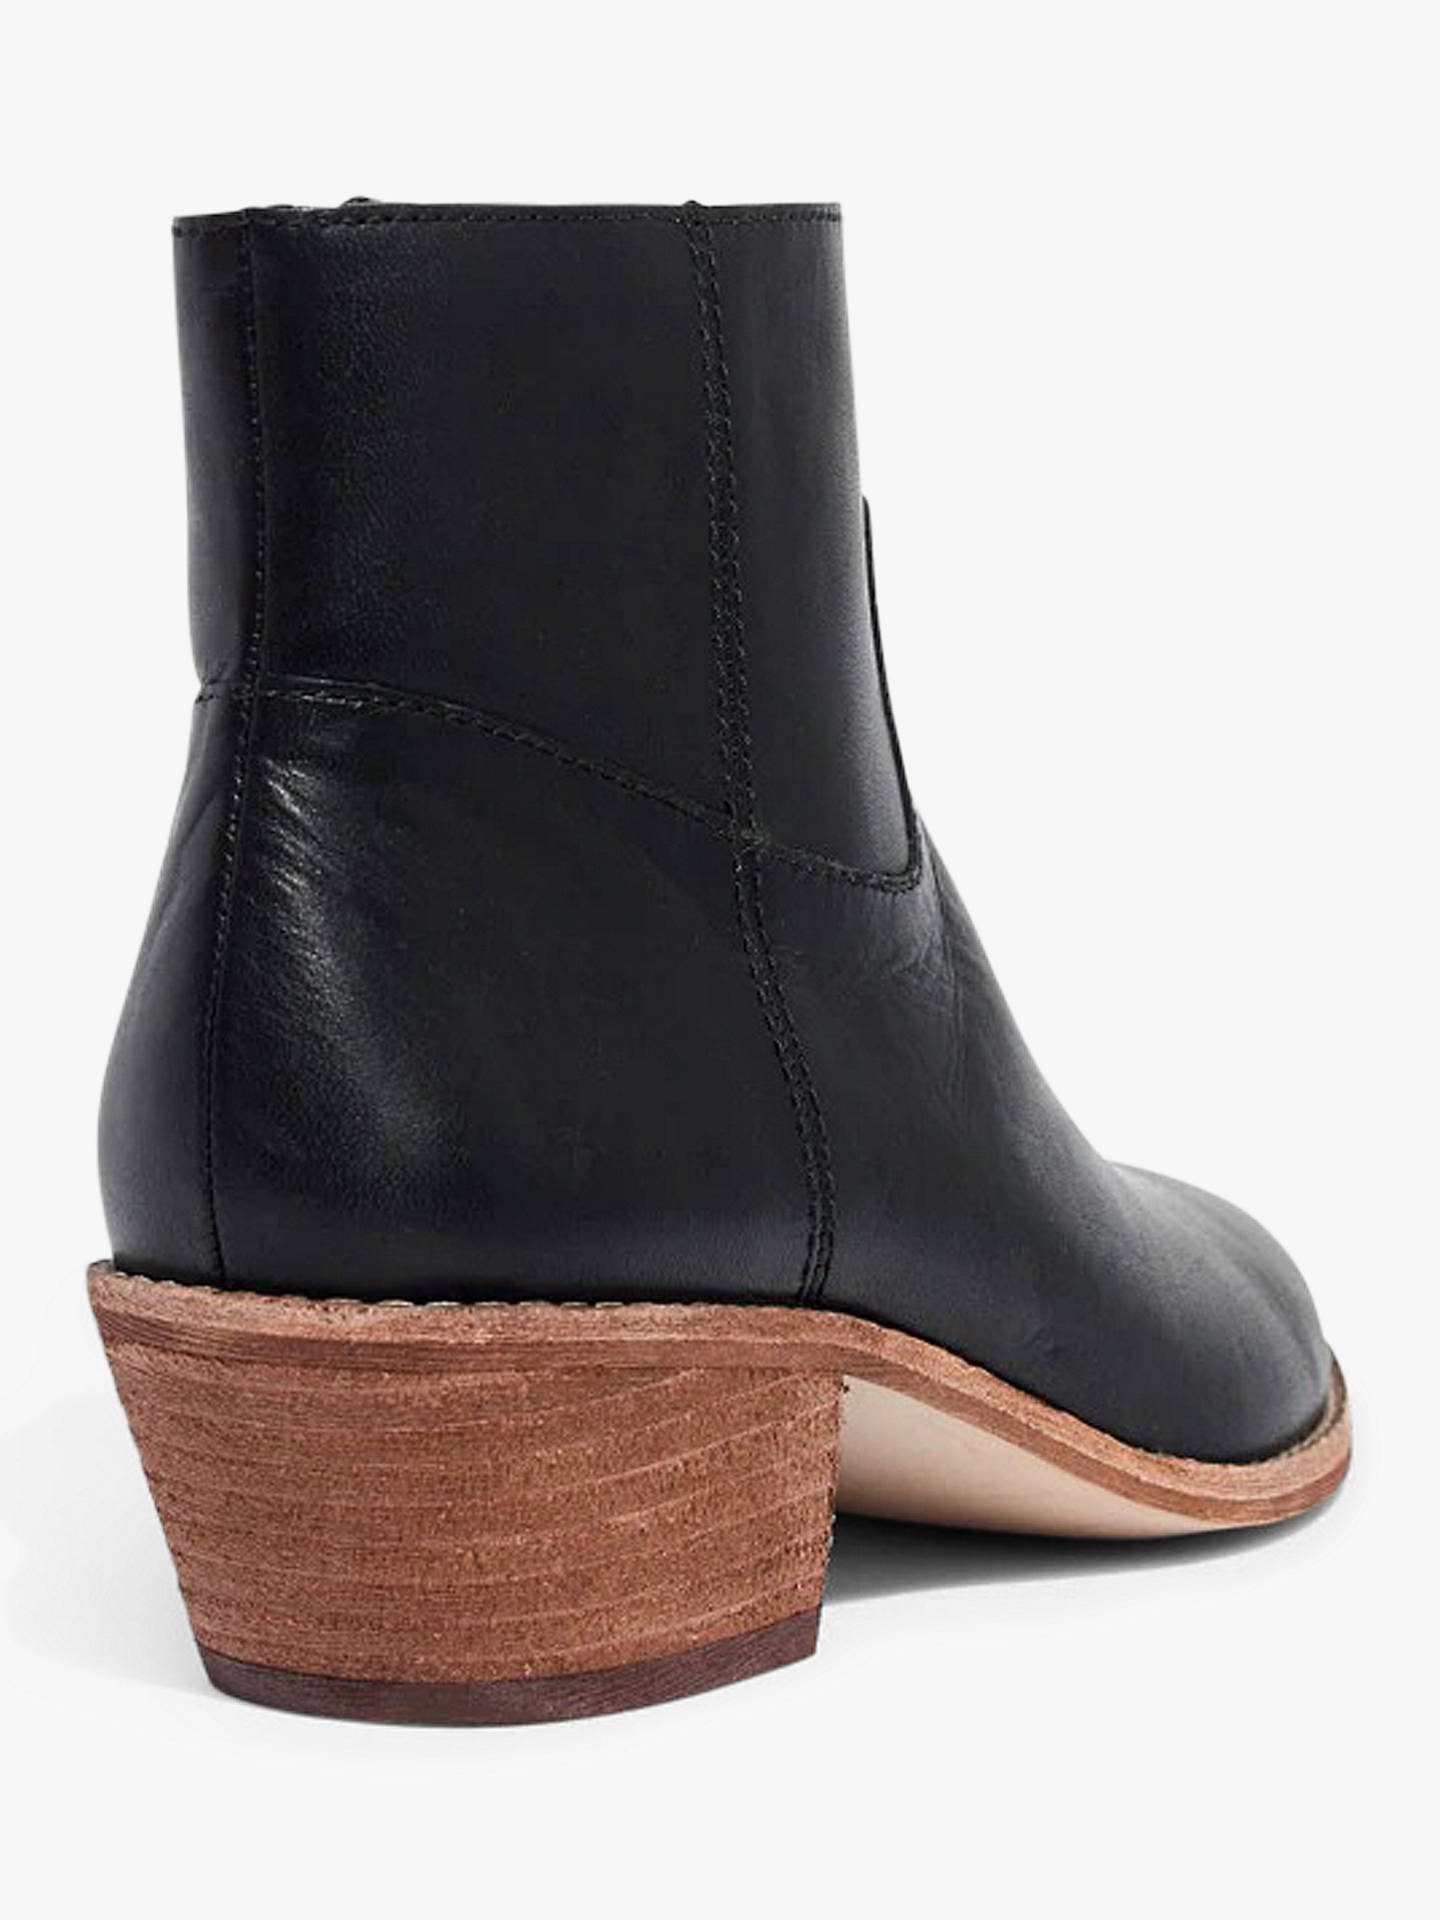 5ab92b9a4f61 ... Buy Madewell Charley Leather Pointed Ankle Boots, Black, 5.5 Online at  johnlewis.com